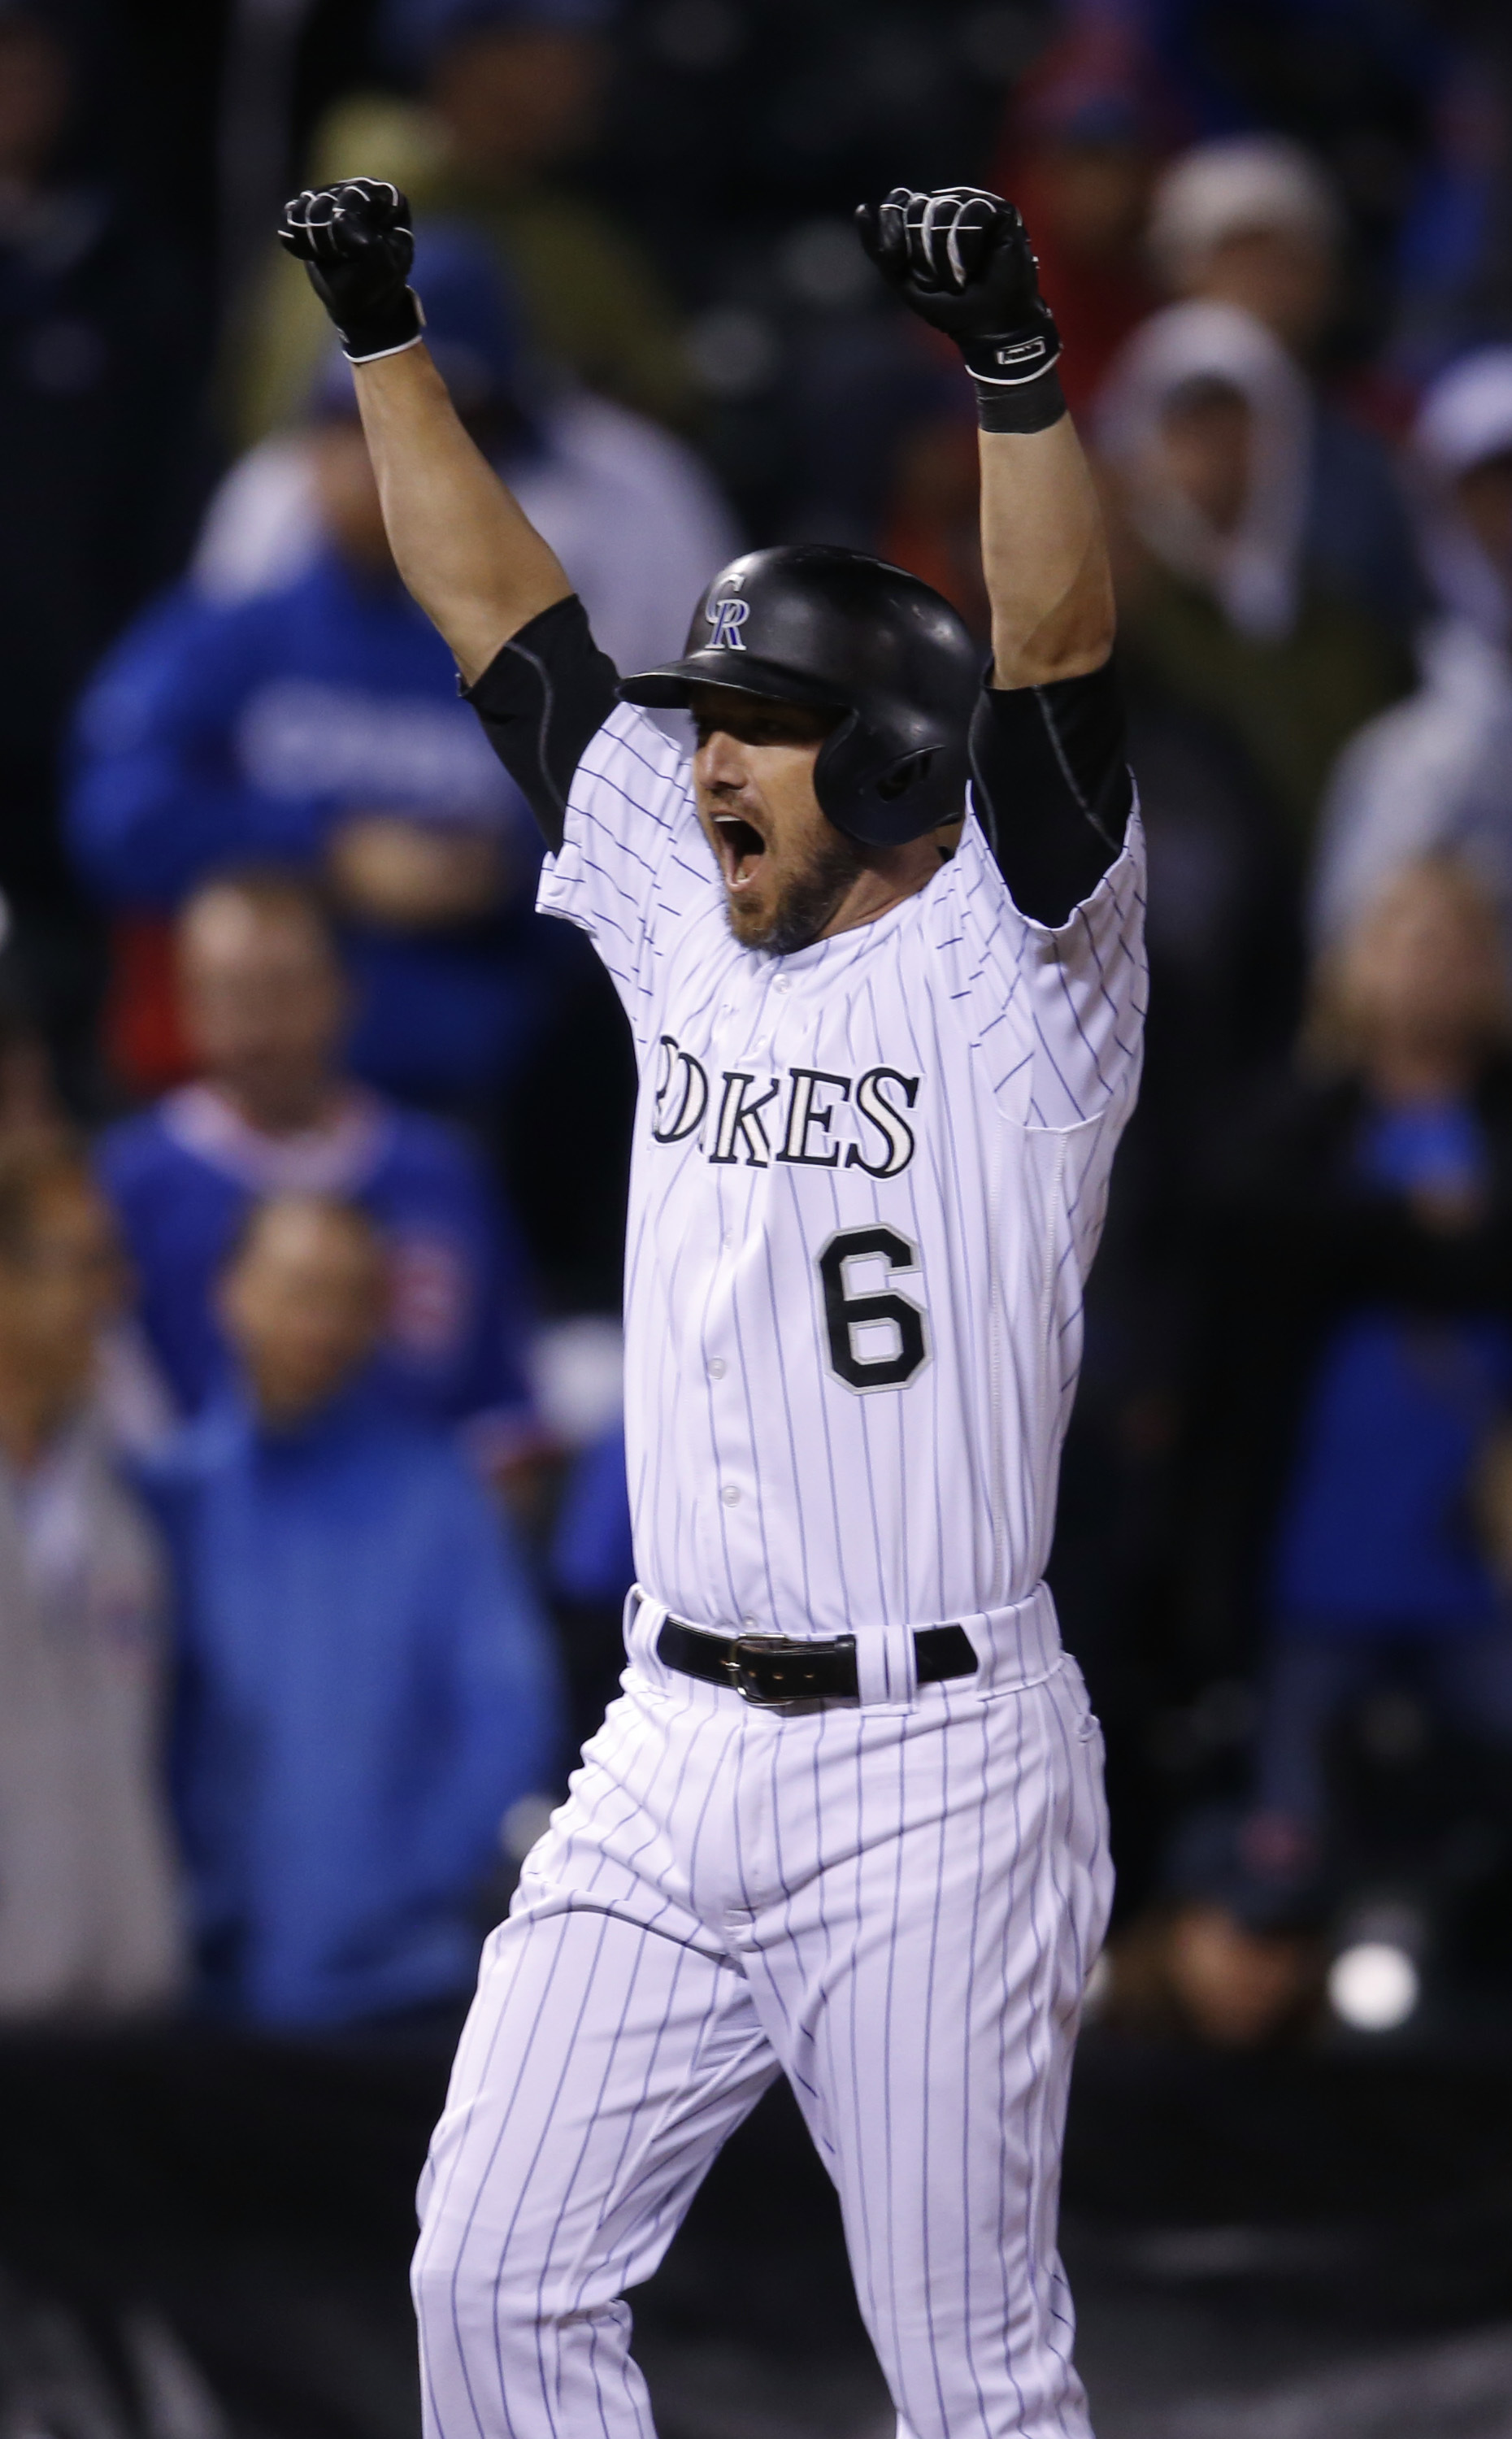 Colorado Rockies' Ryan Raburn reacts as he is ordered in to score the winning run by umpires in the 11th inning of a baseball game against the Chicago Cubs early on Saturday, Aug. 20, 2016 in Denver. The Rockies won 7-6 when Raburn, who had just hit an RB